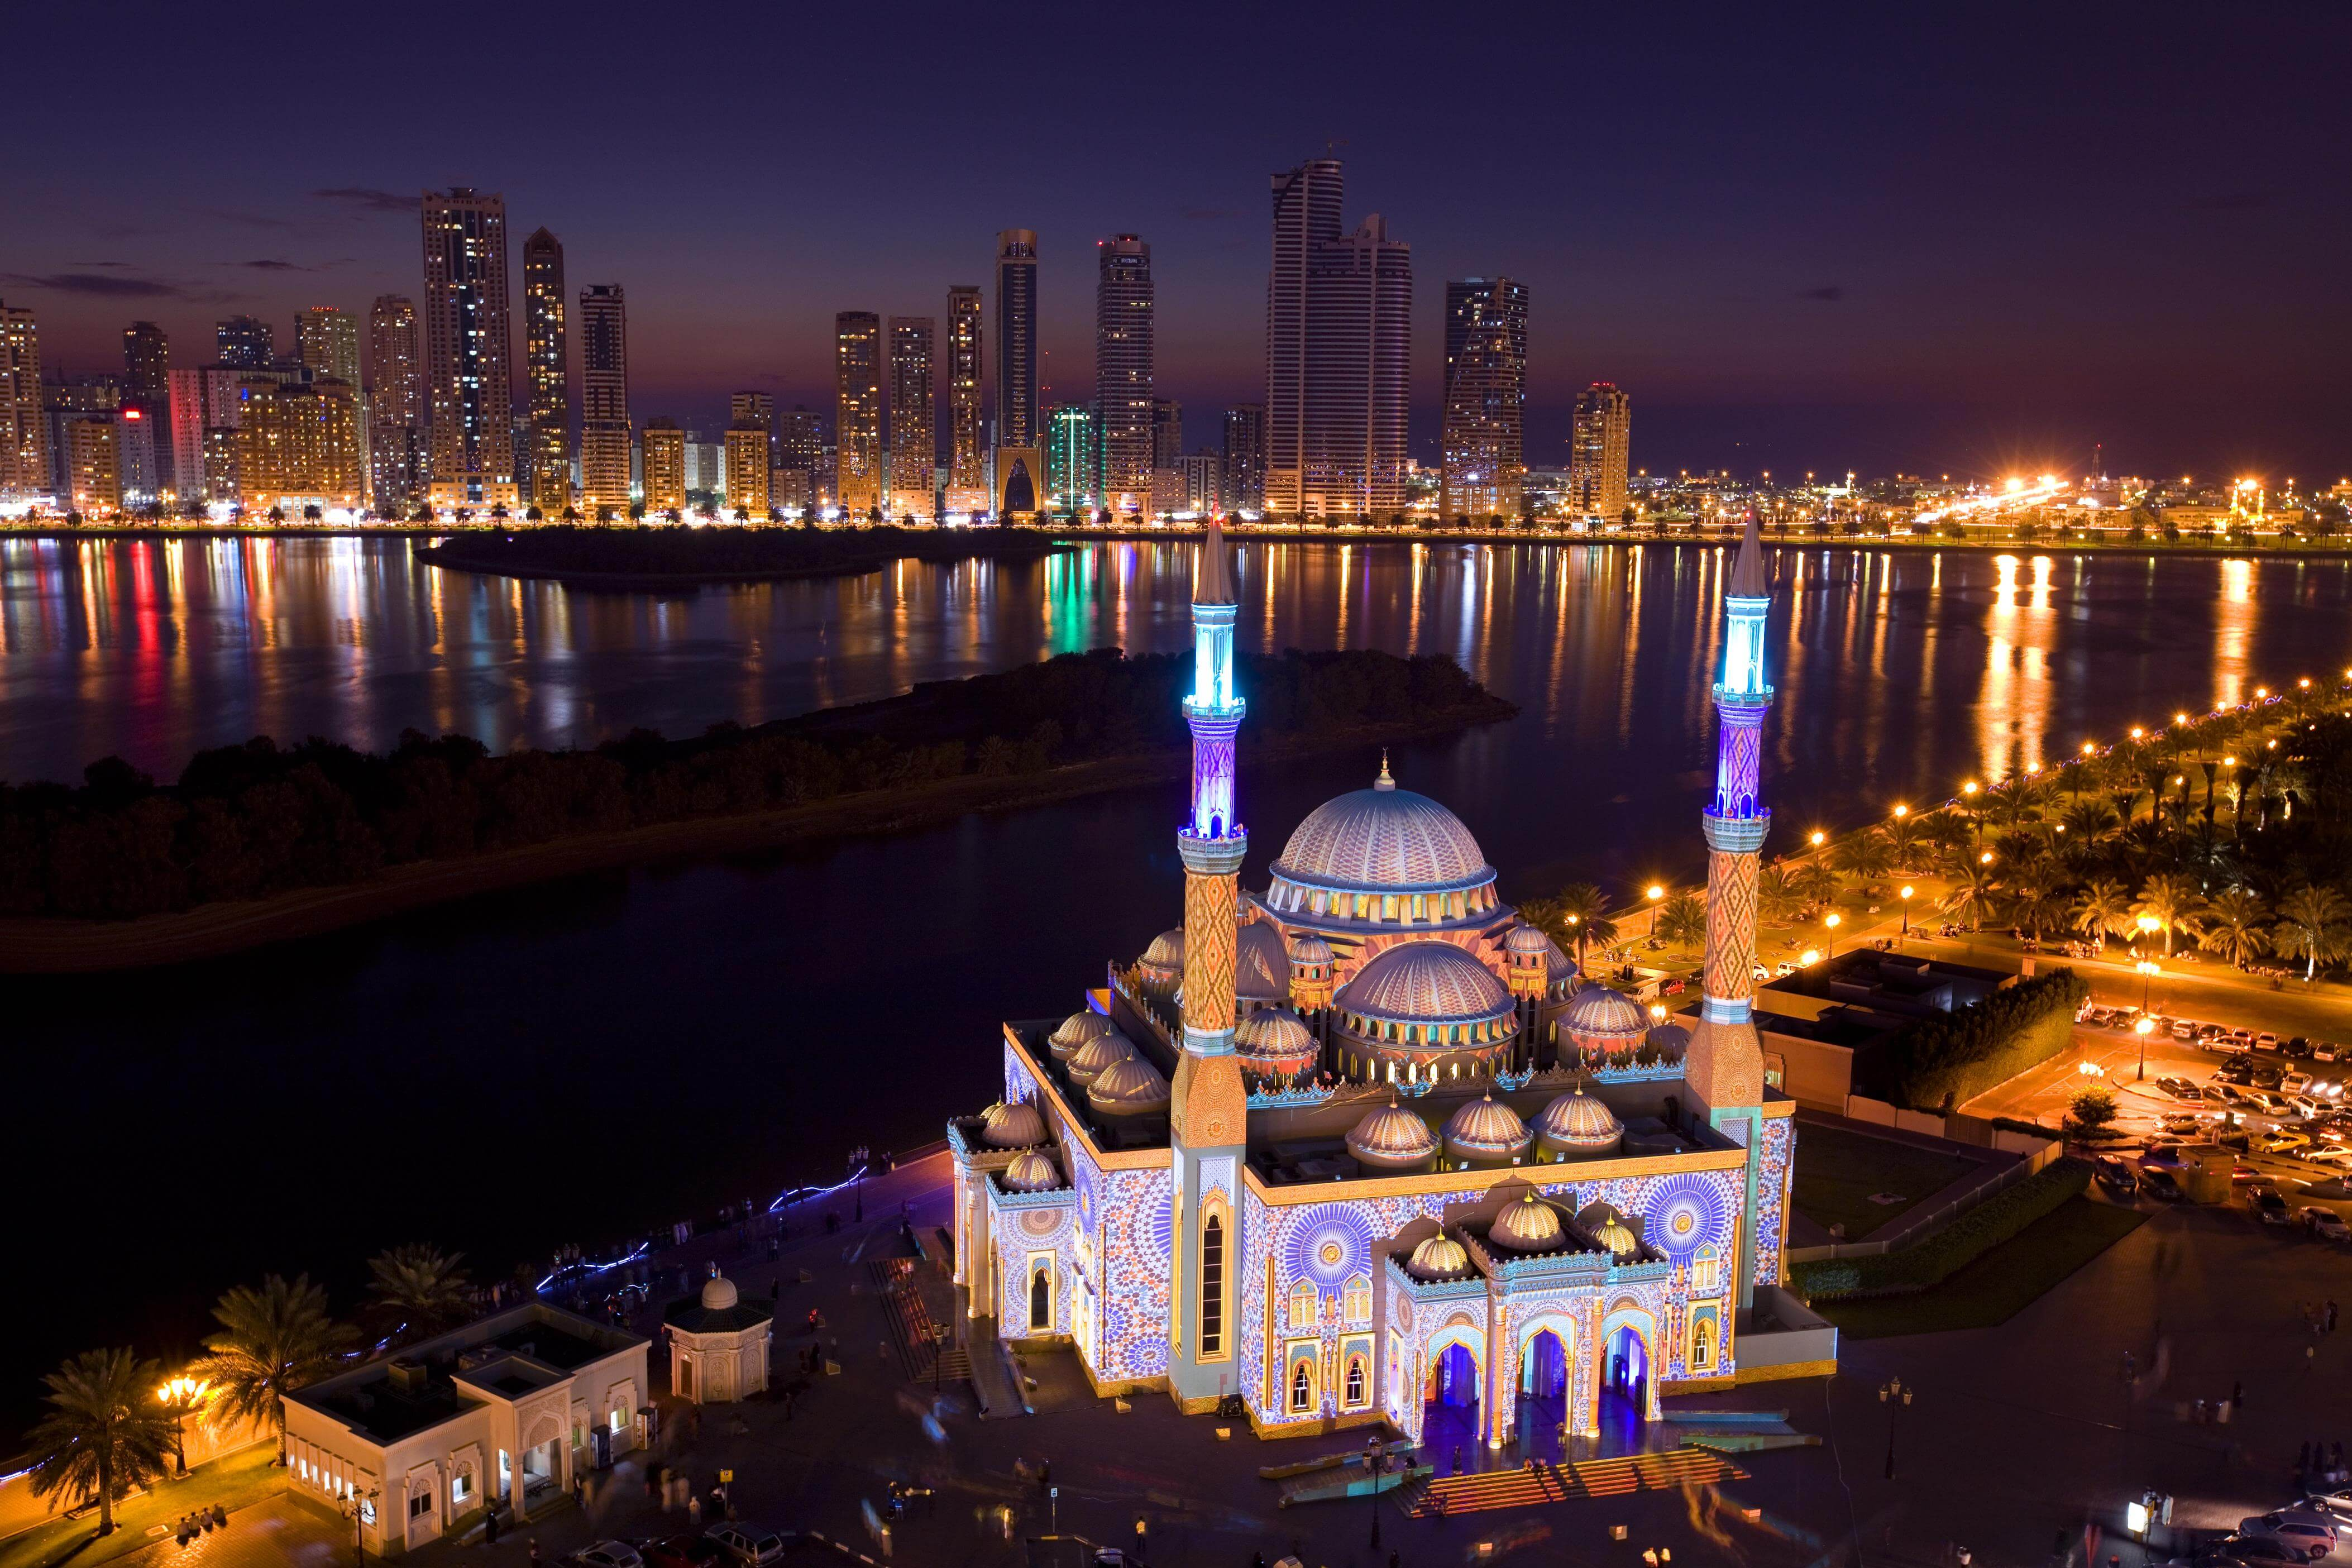 San Francisco to Sharjah, UAE for only $657 roundtrip (Nov-Mar dates)